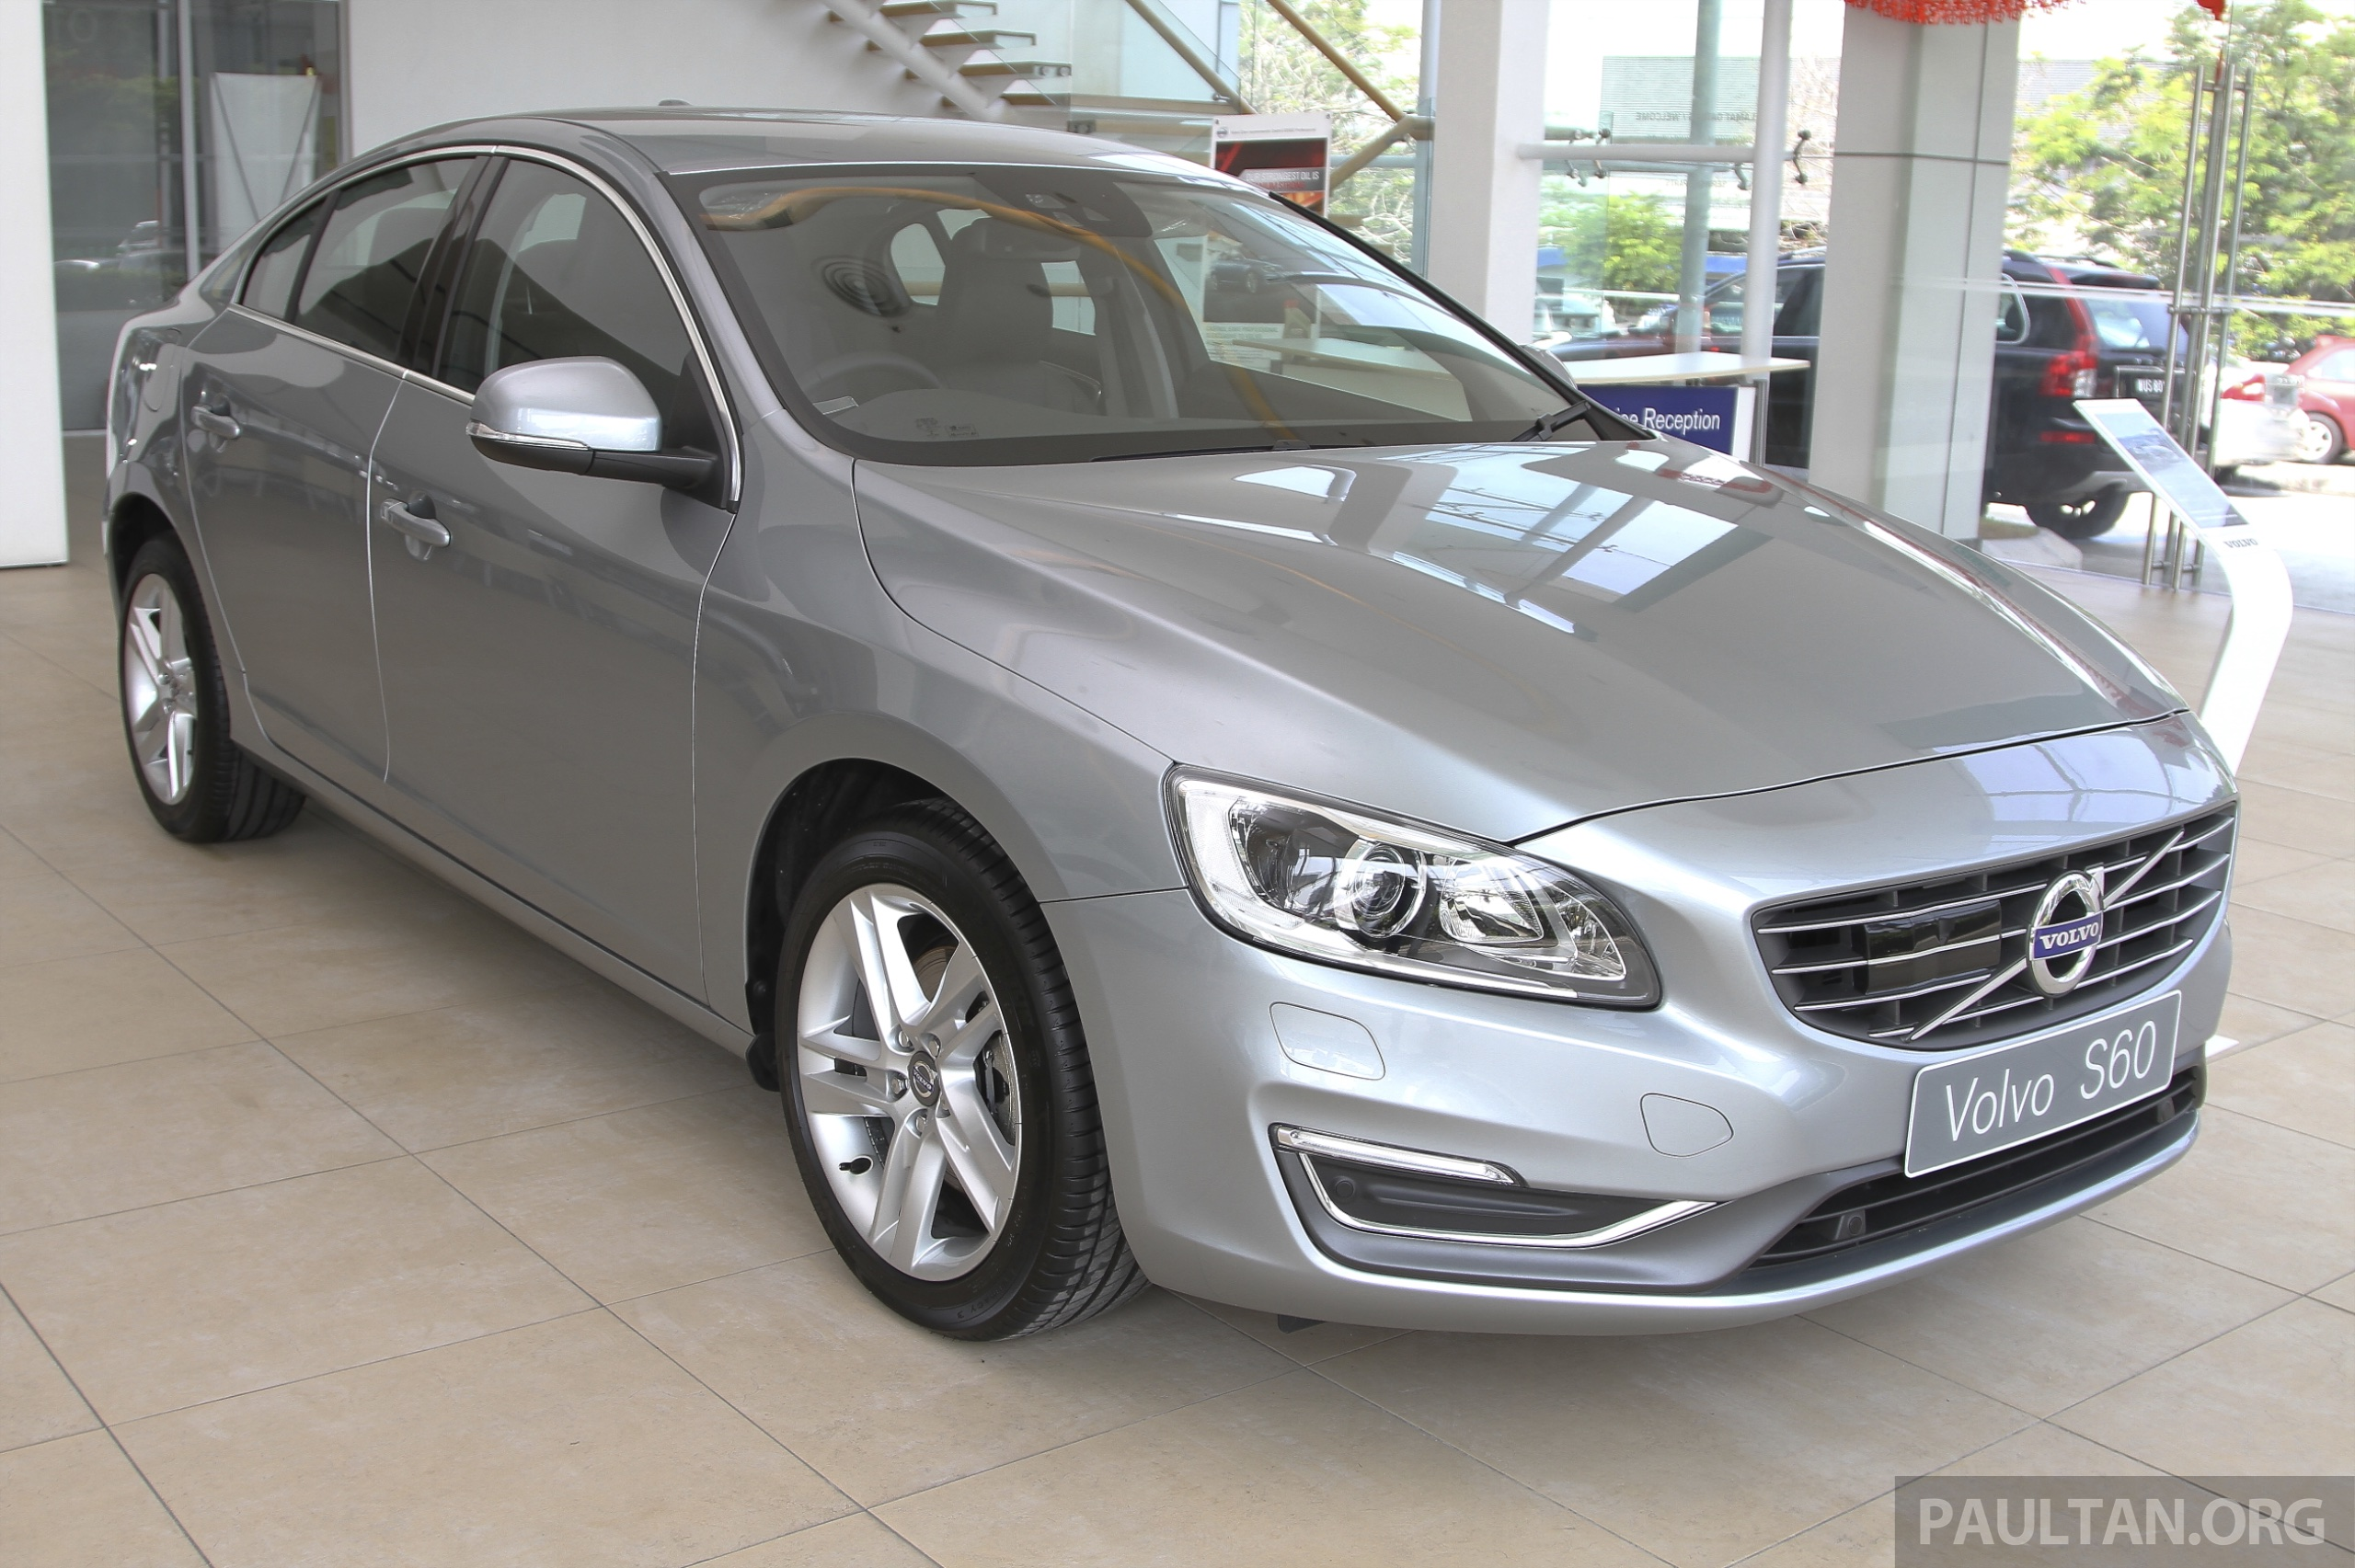 volvo s60 t5 facelift at glenmarie showroom rm269k. Black Bedroom Furniture Sets. Home Design Ideas